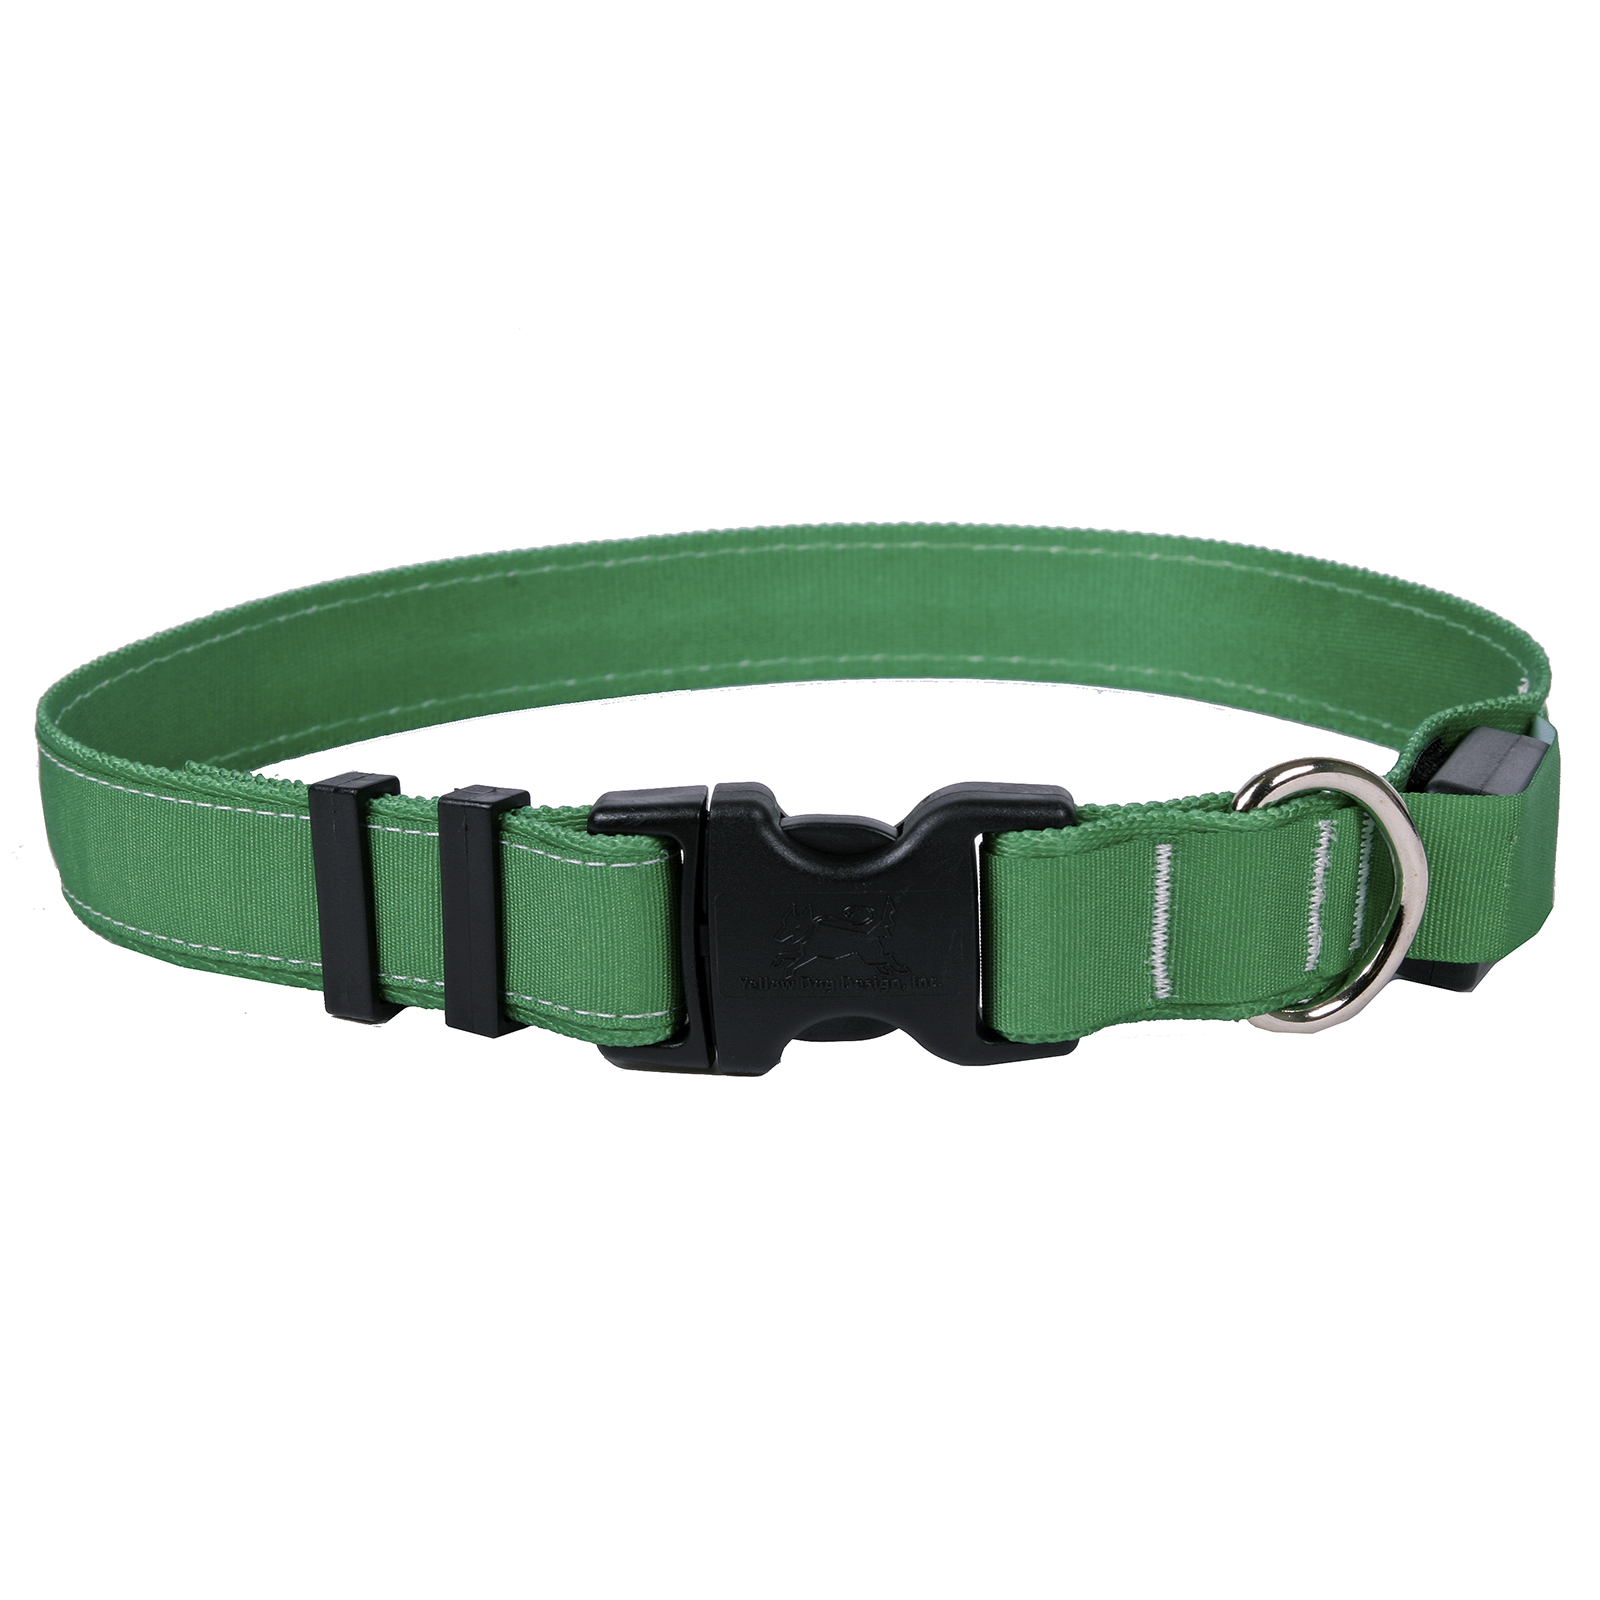 Solid Kelly Green ORION LED Dog Collar